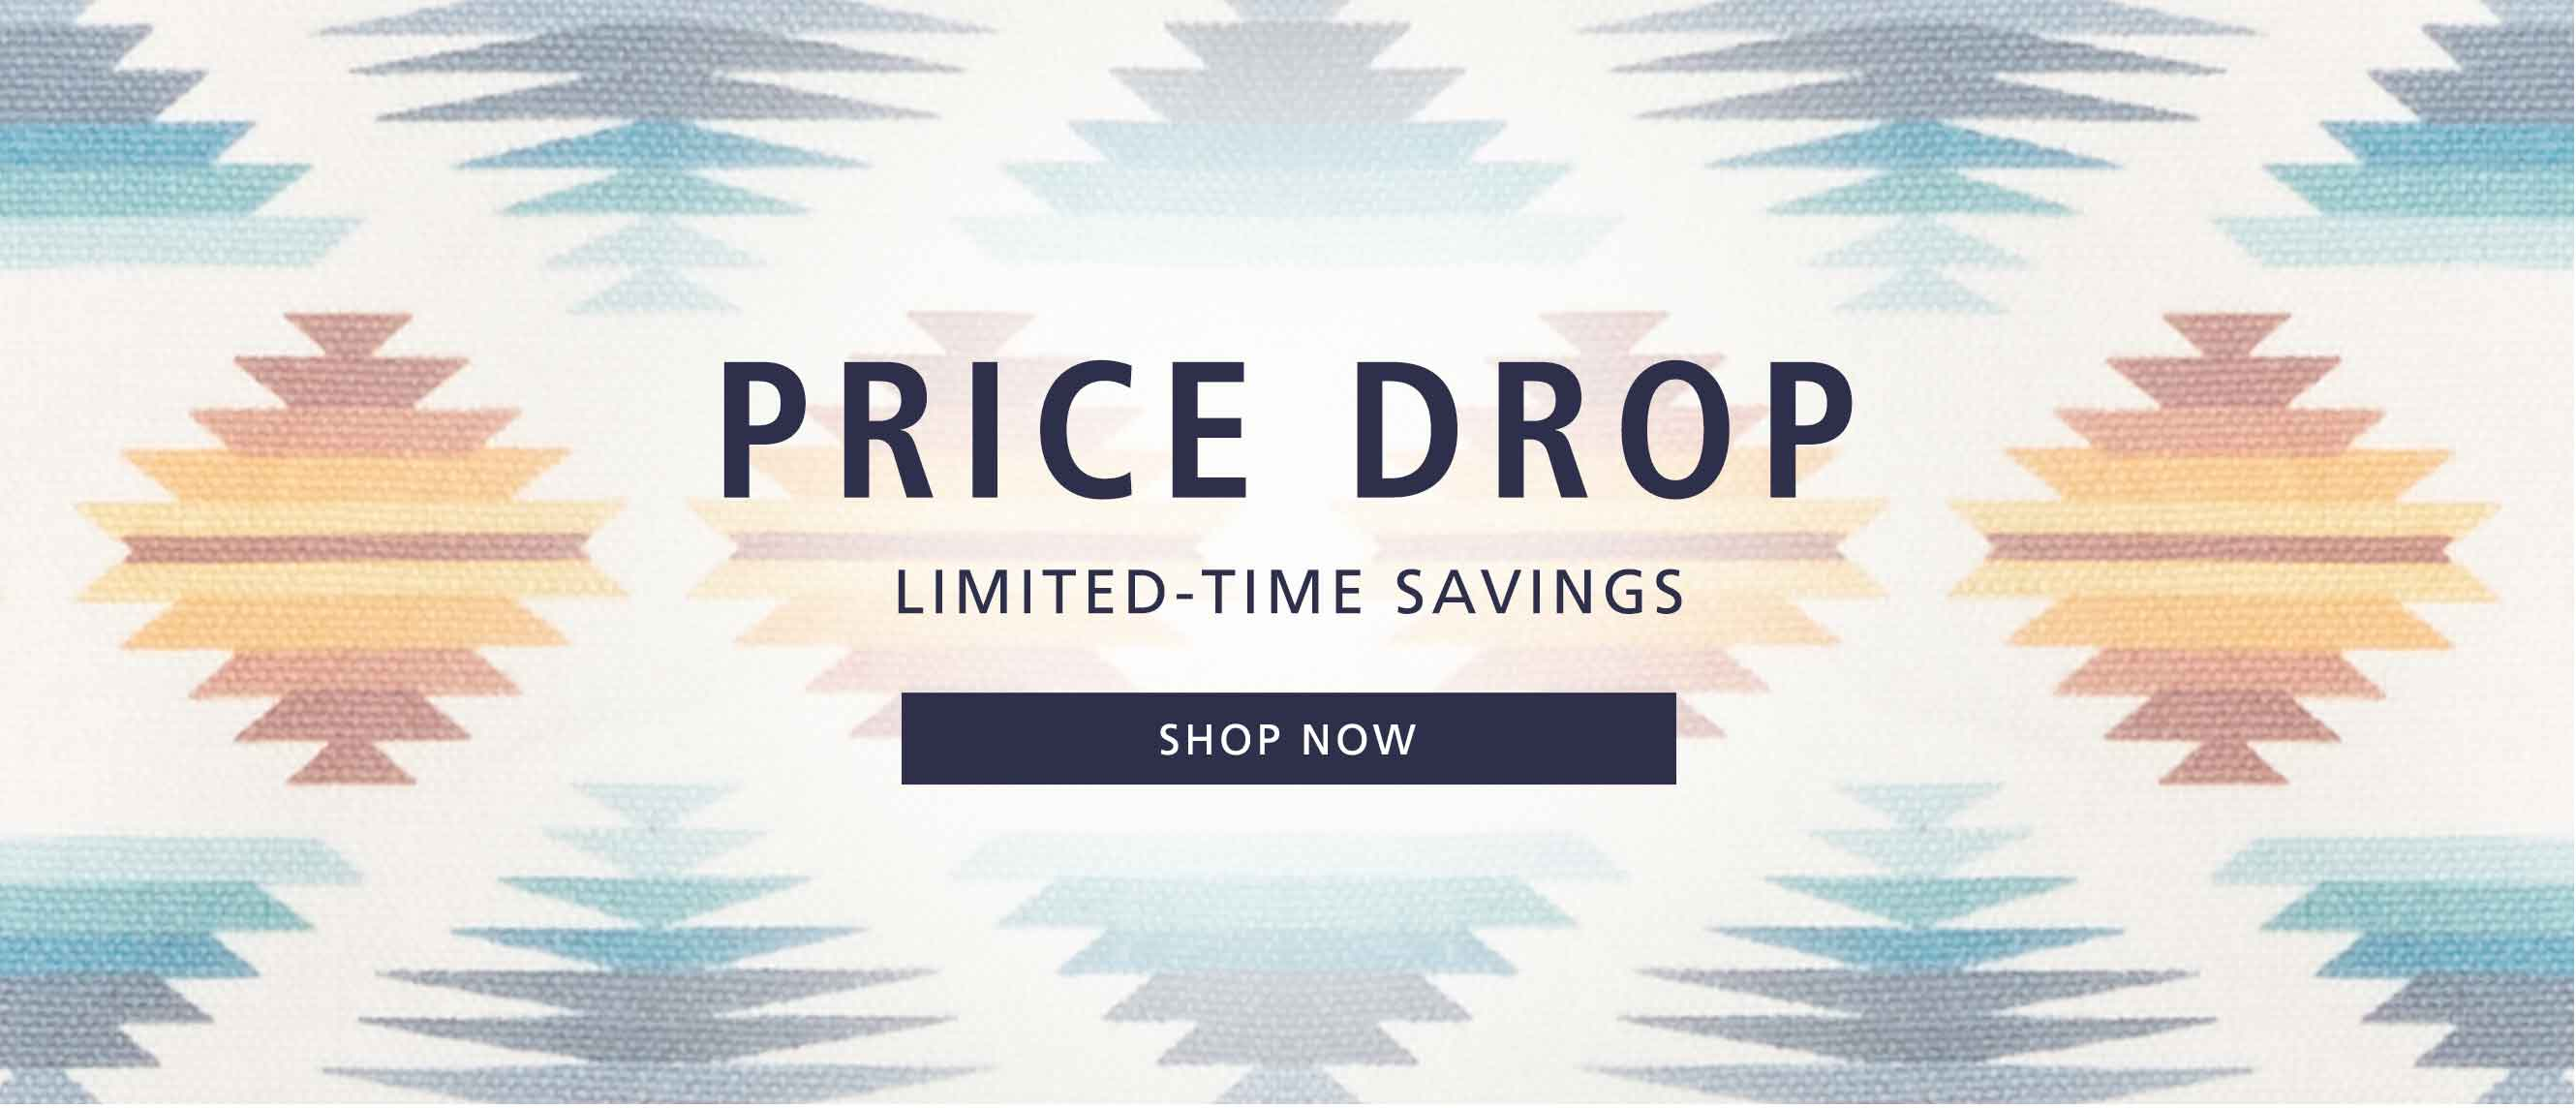 PRICE DROP | Limited-time savings - SHOP NOW